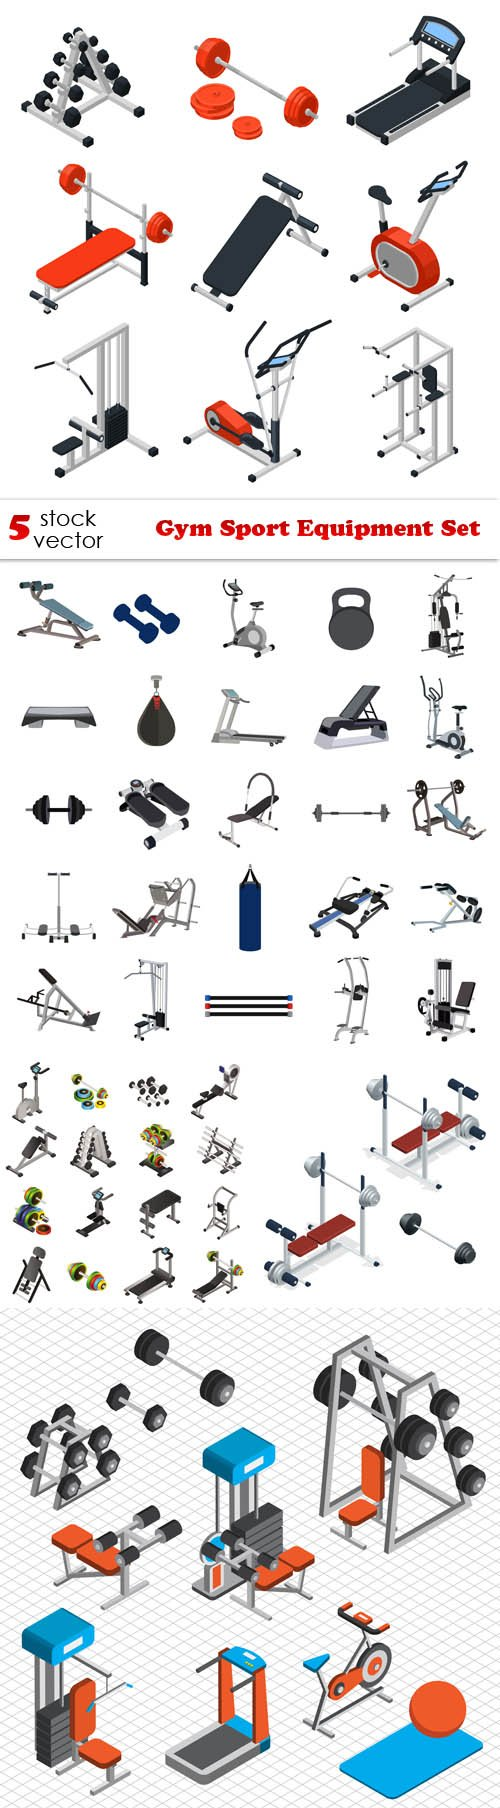 Vectors - Gym Sport Equipment Set